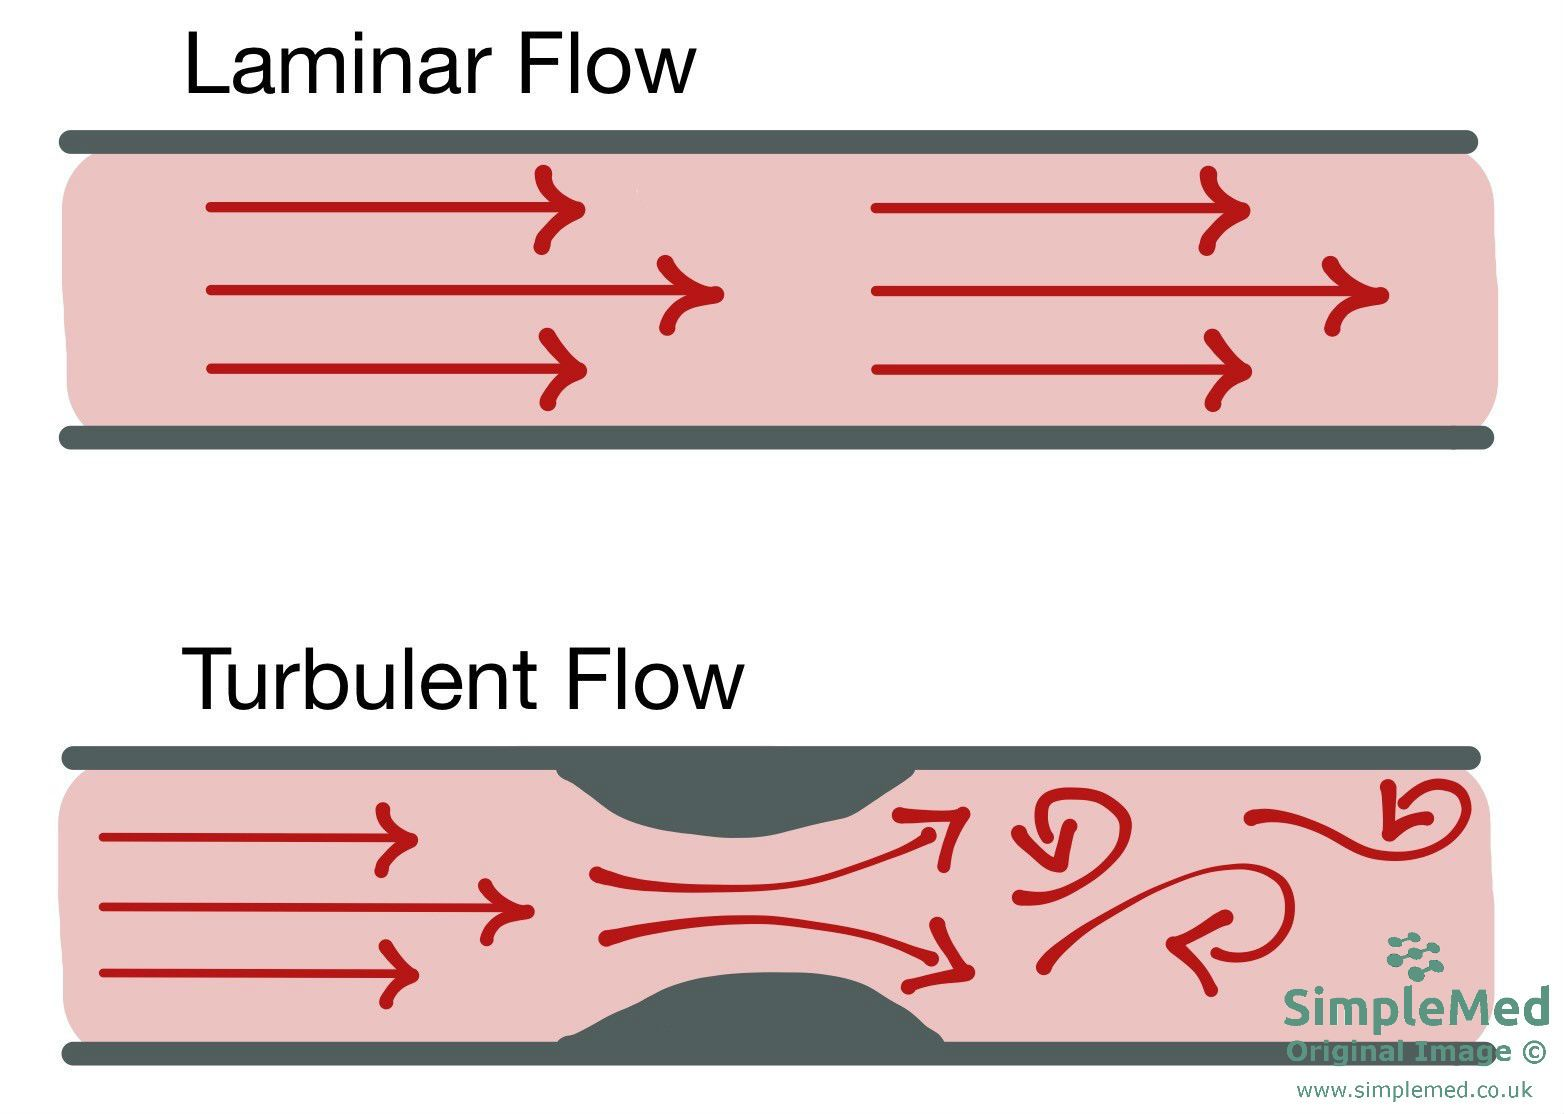 Blood flow in blood vessels - Laminar and Turbulent flow SimpleMed